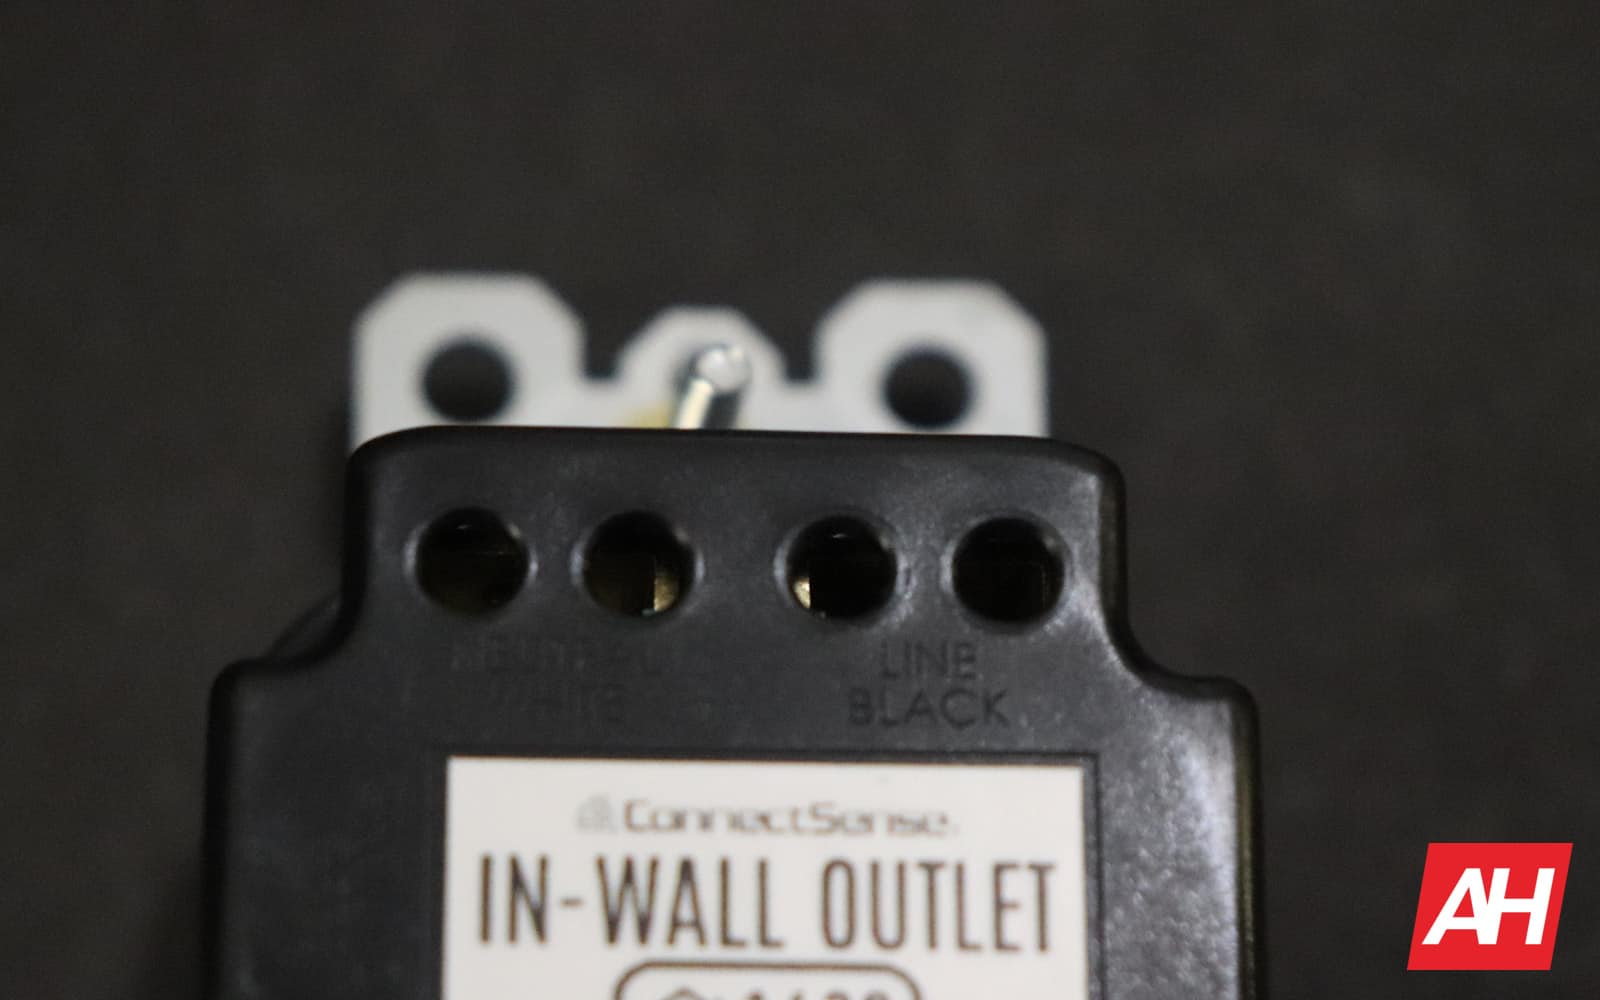 ConnectSense In Wall Outlet Review 02 5 Hardware